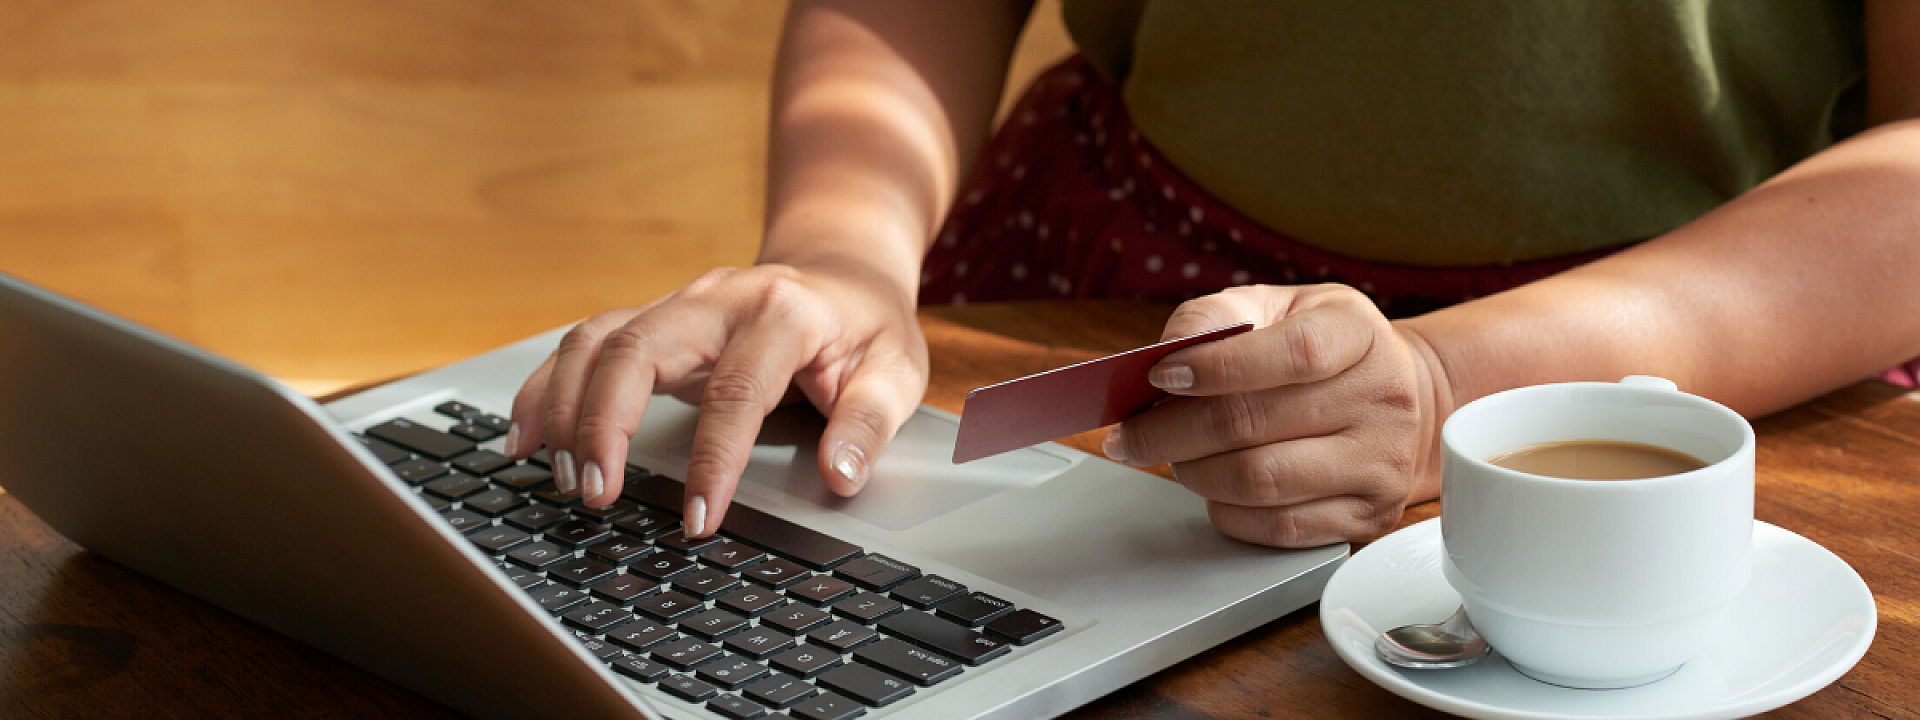 person shopping online holding credit card